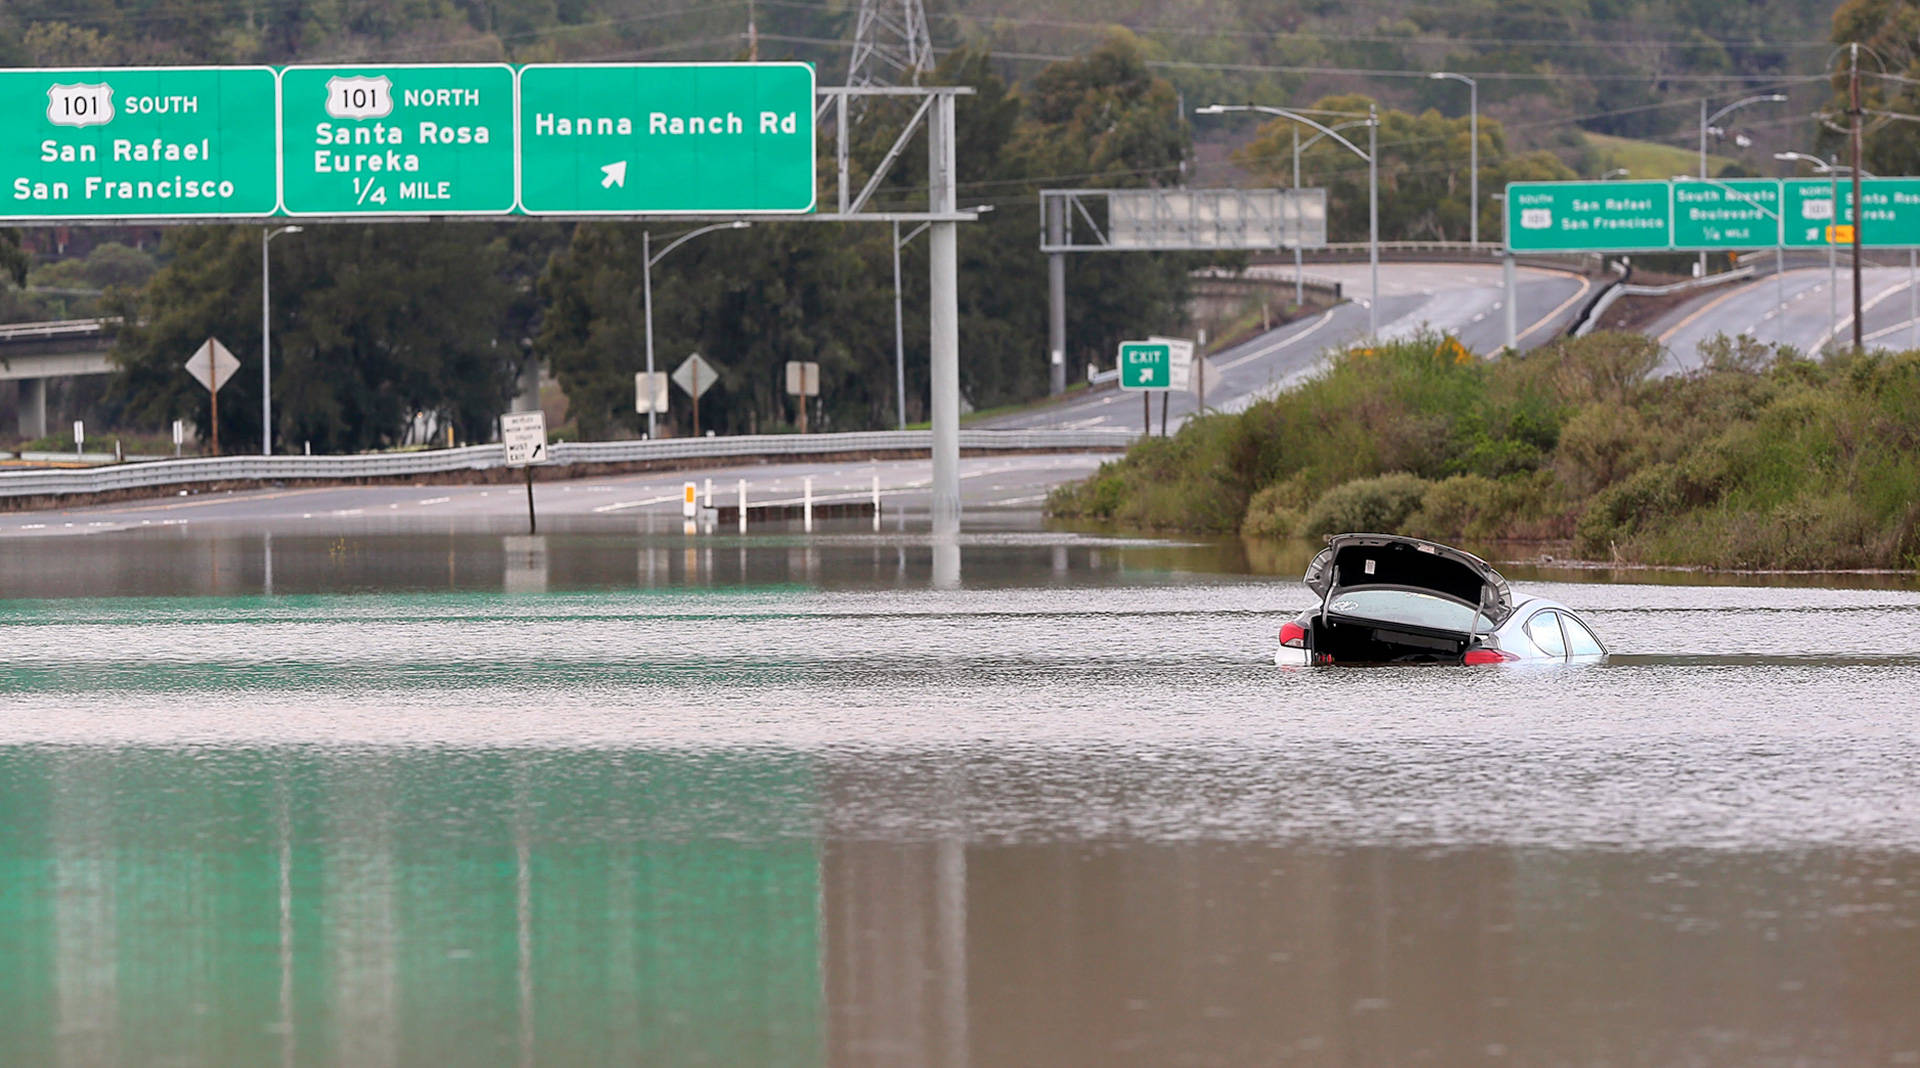 Portions of Highway 37 flood on a regular basis, and the important commuter road is increasingly vulnerable to rising seas. Officials are considering an array of options, including raising the road surface by several feet and protecting it with levees. Christopher Chung/The Press Democrat